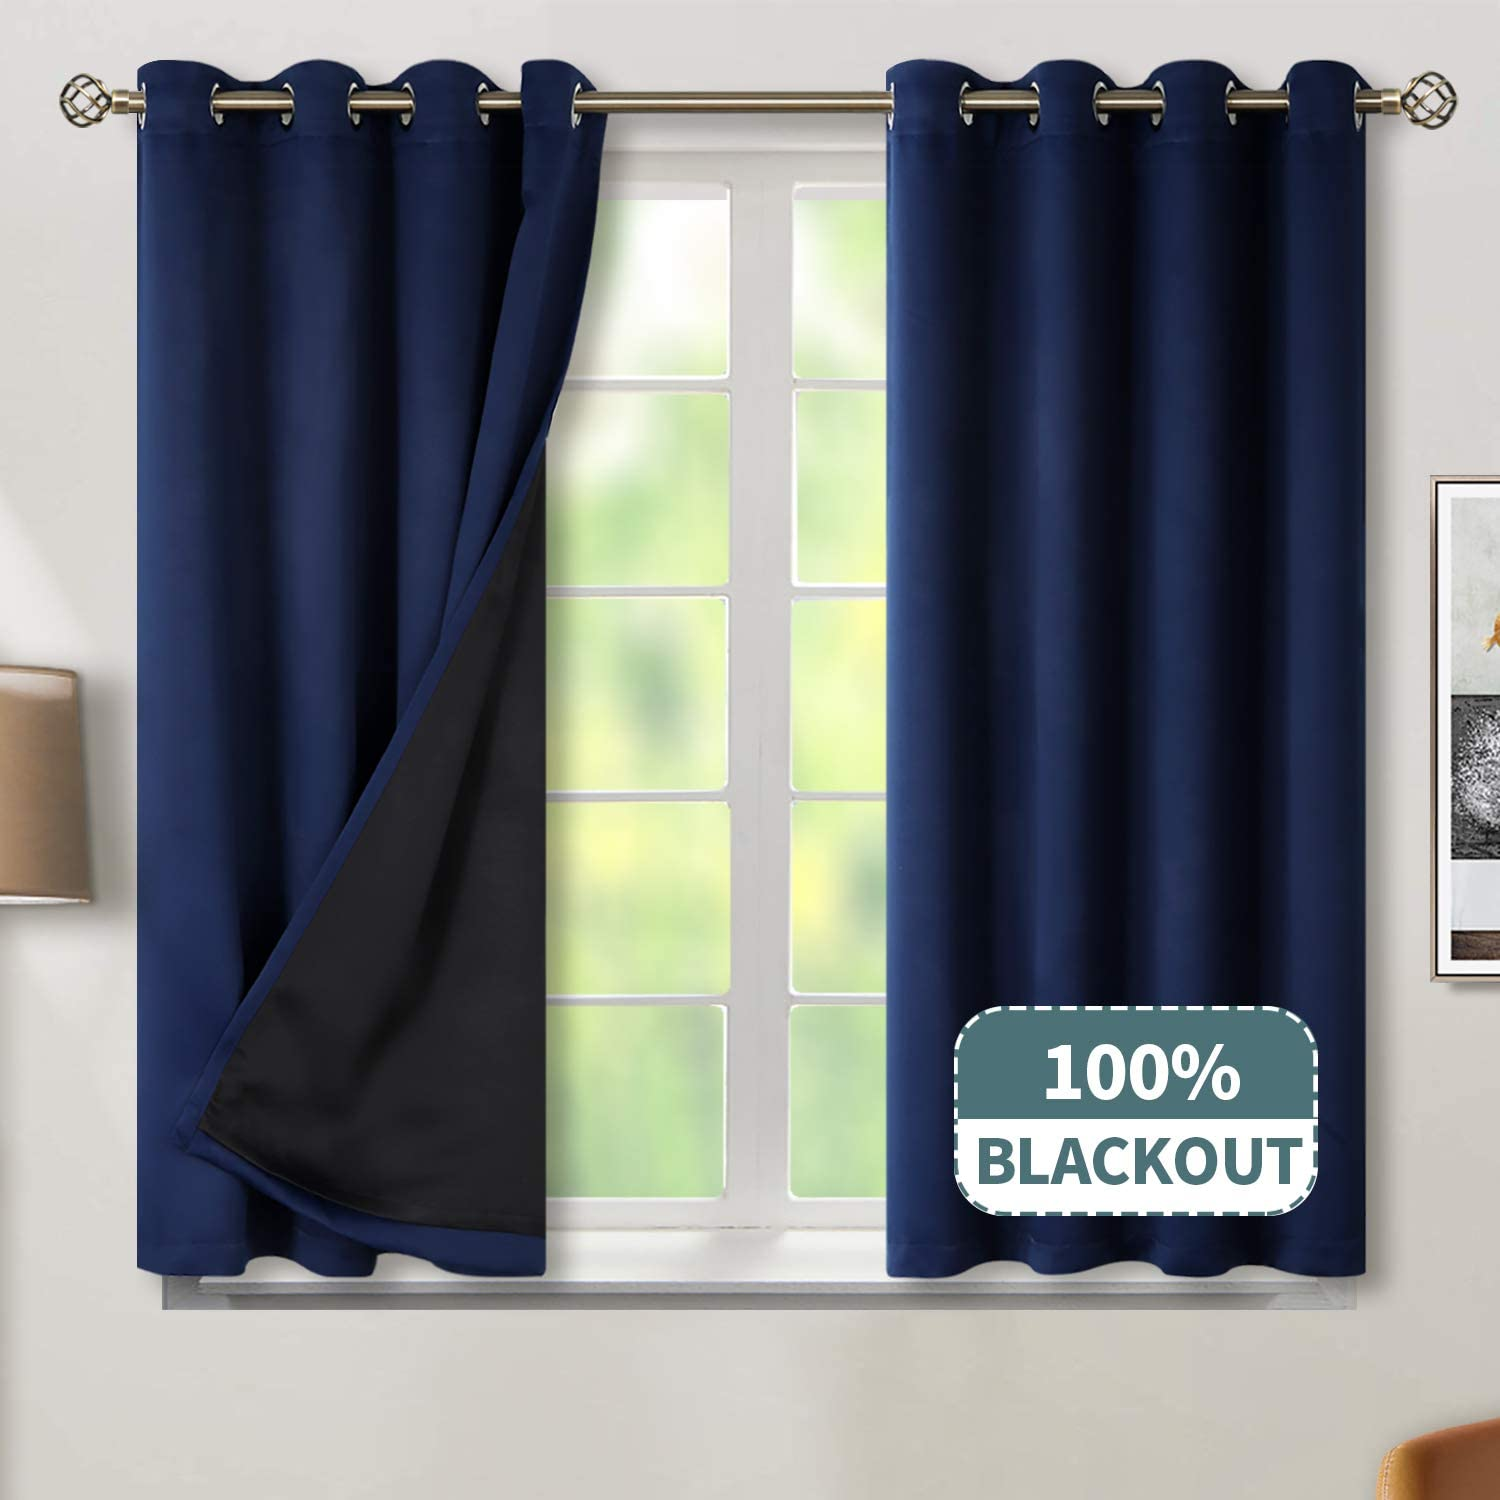 BGment Thermal Insulated 100% Blackout Curtains for Bedroom with Black Liner, Double Layer Full Room Darkening Noise Reducing Grommet Curtain (52 x 45 Inch, Navy Blue, 2 Panels)